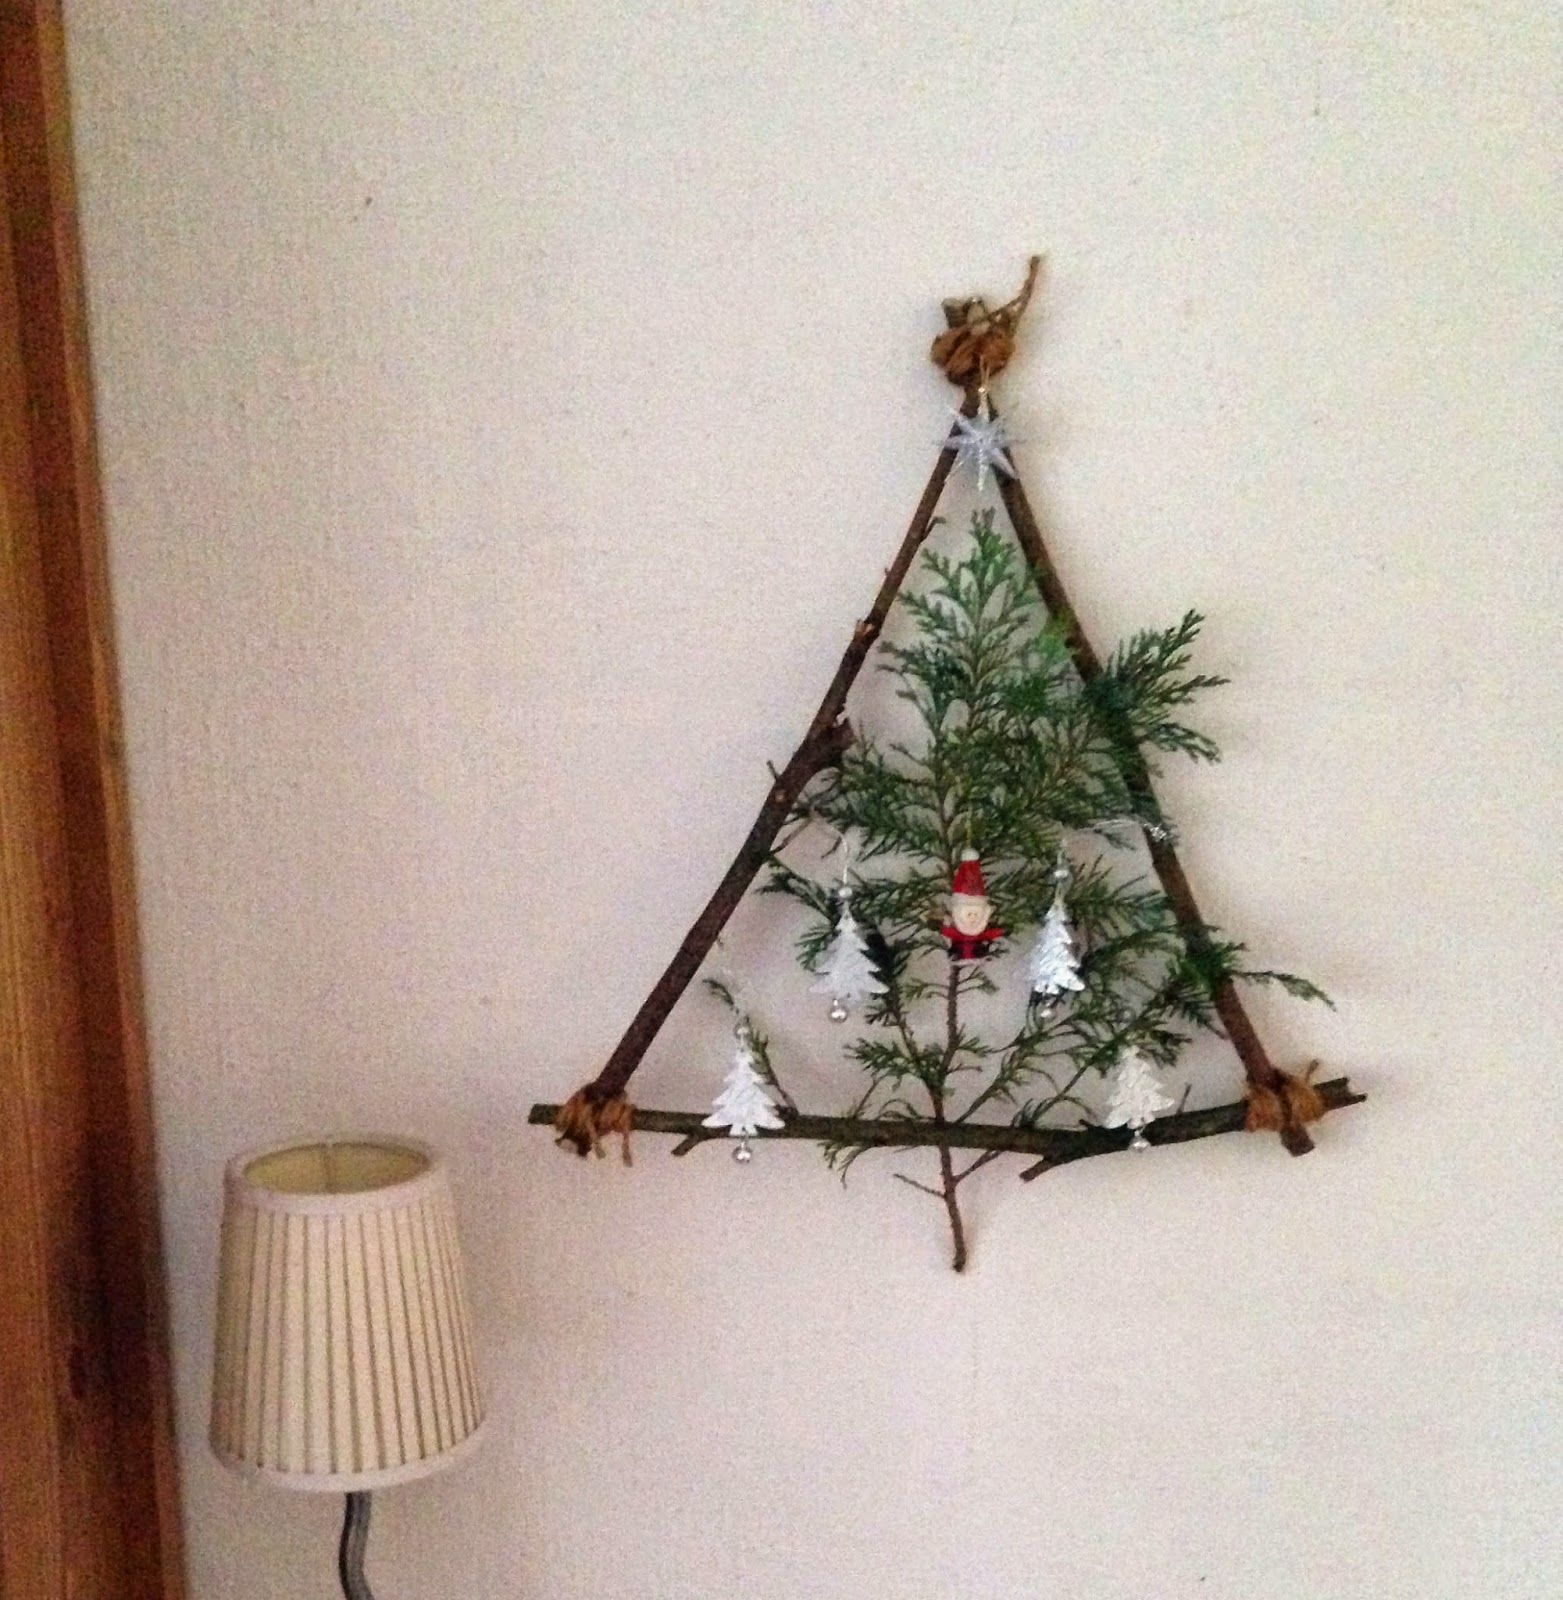 hi guys heres a quick cute idea how to decorate that empty space on your wall christmas style all you need are some twigs a littl